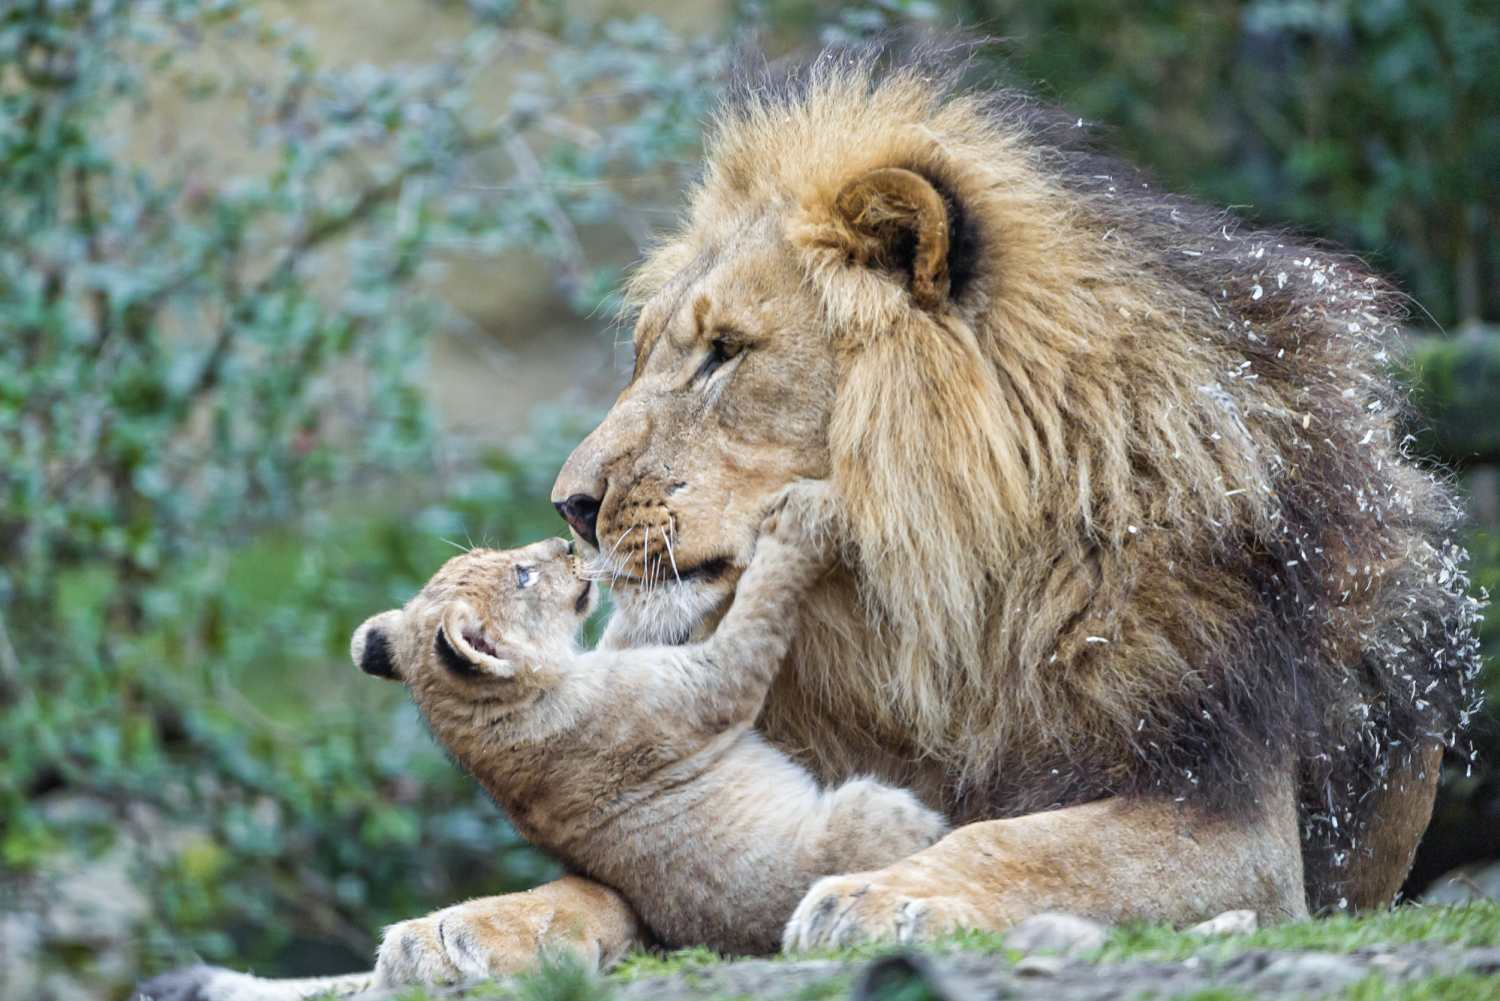 This African lion cub is snuggling with his father. Female lions typically rear their young without much participation from the male.